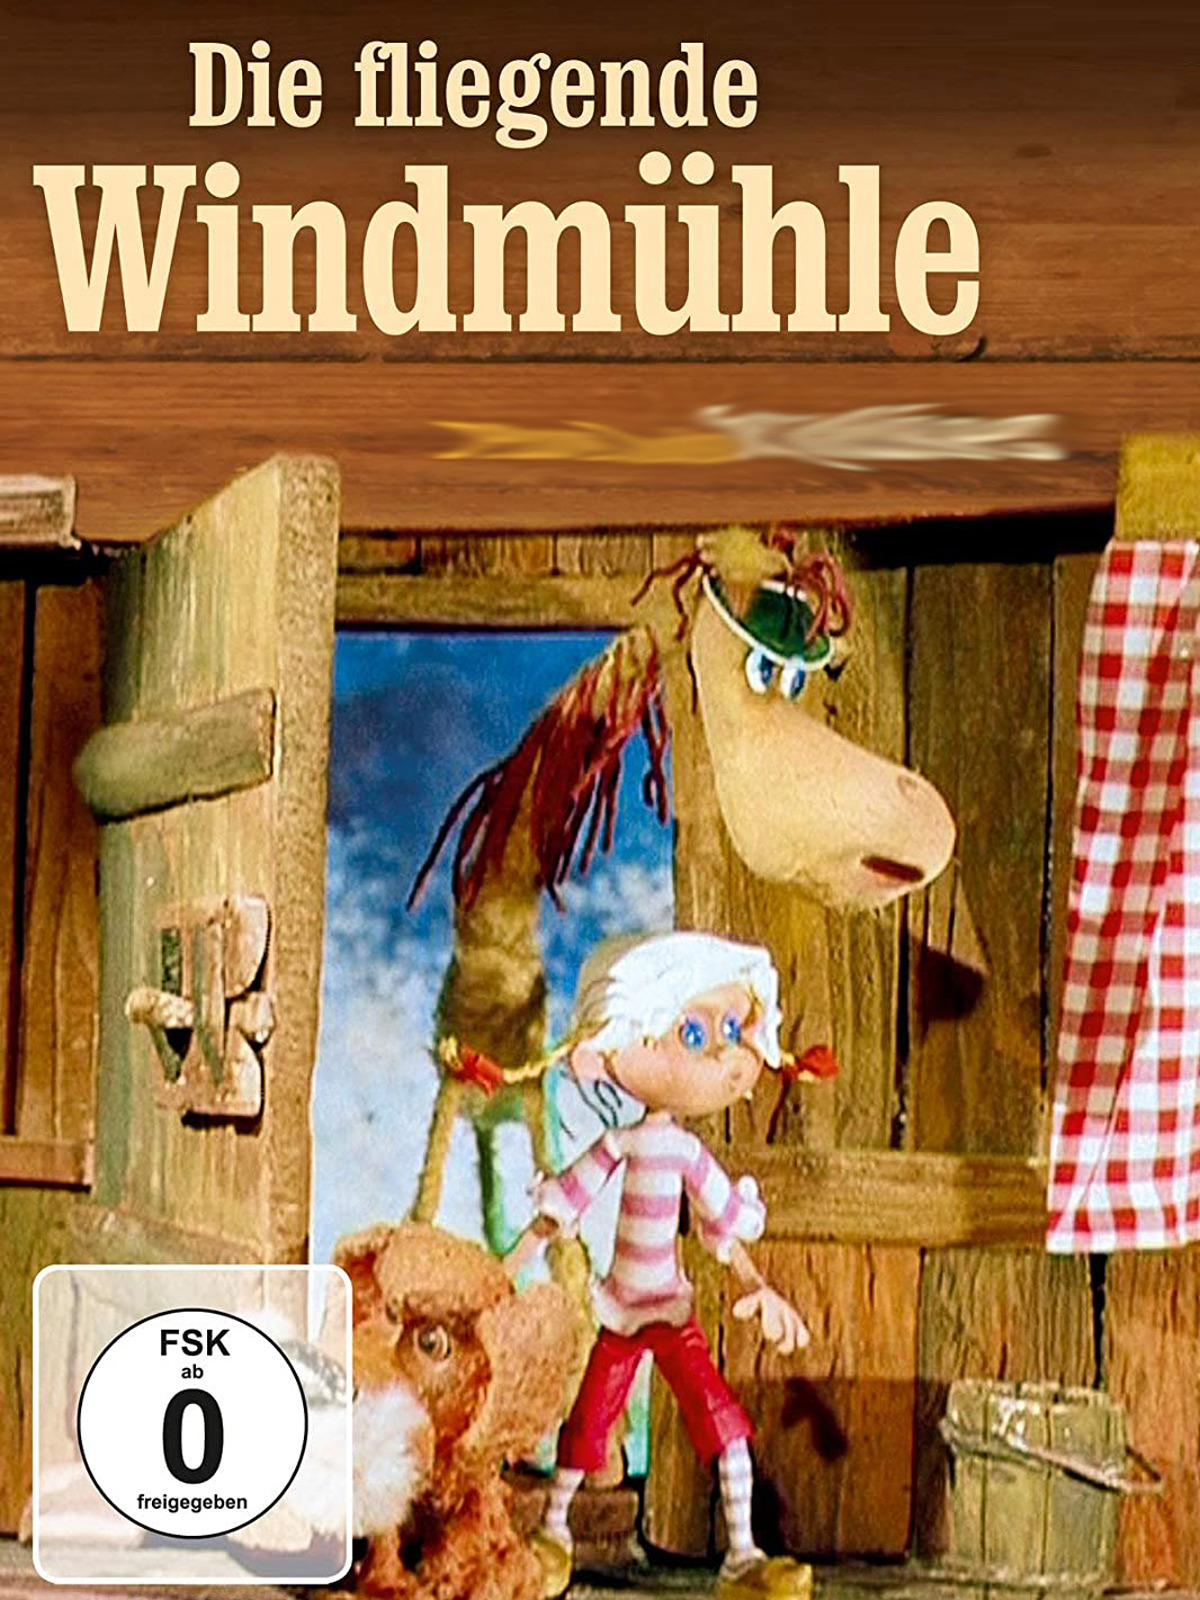 Die fliegende Windmühle